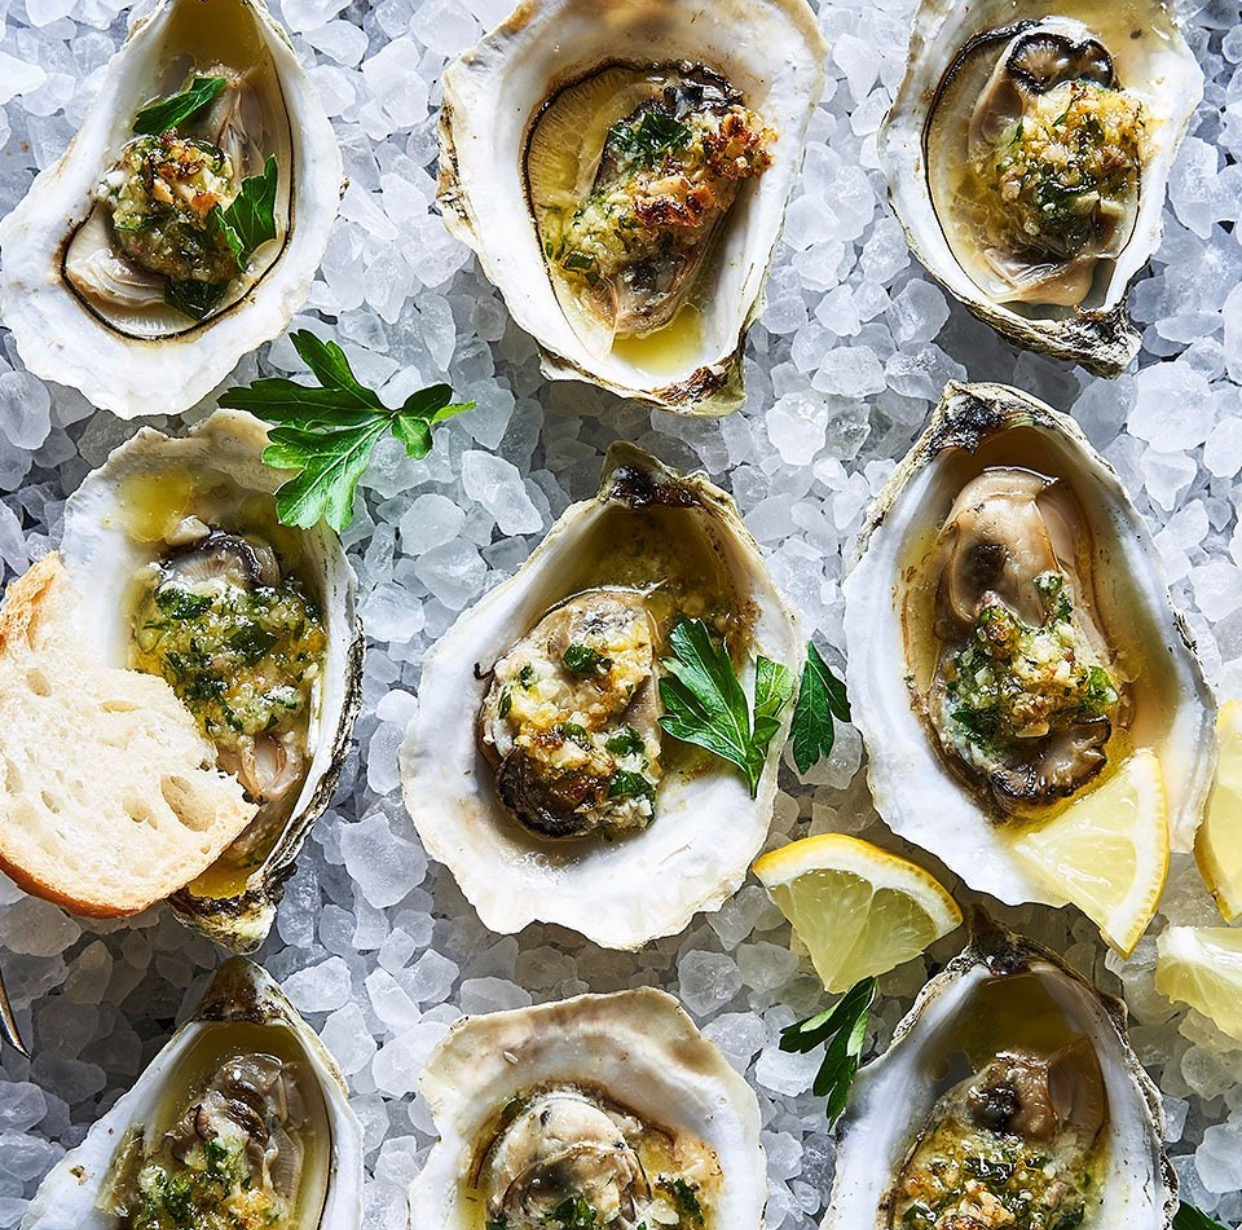 Voyager oysters